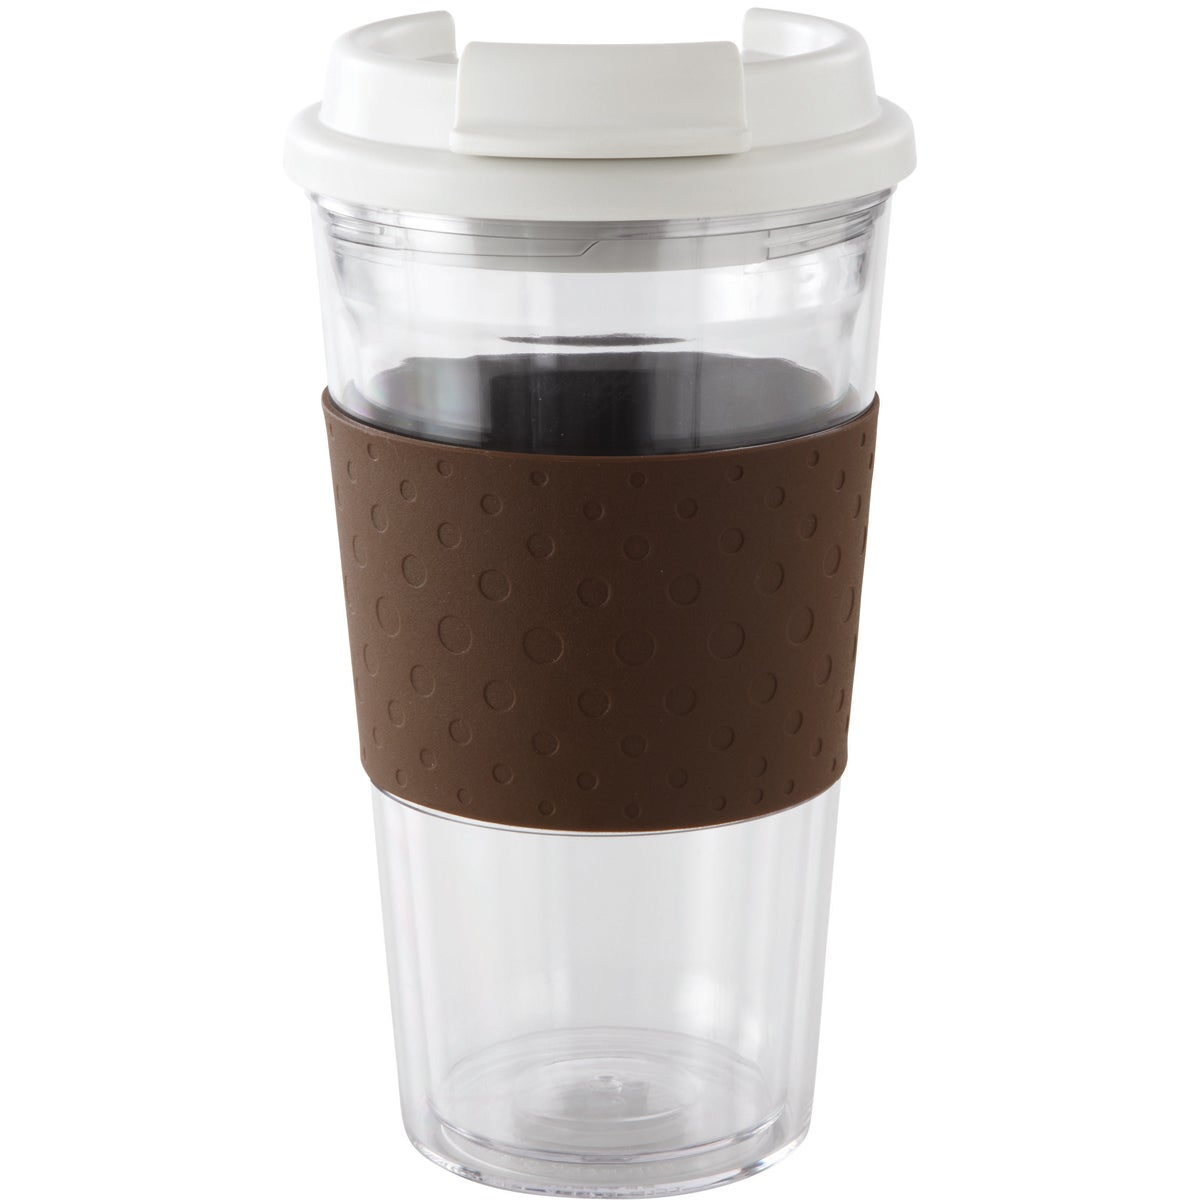 Brew View Timbler 16 Ounce-Brown/Clear